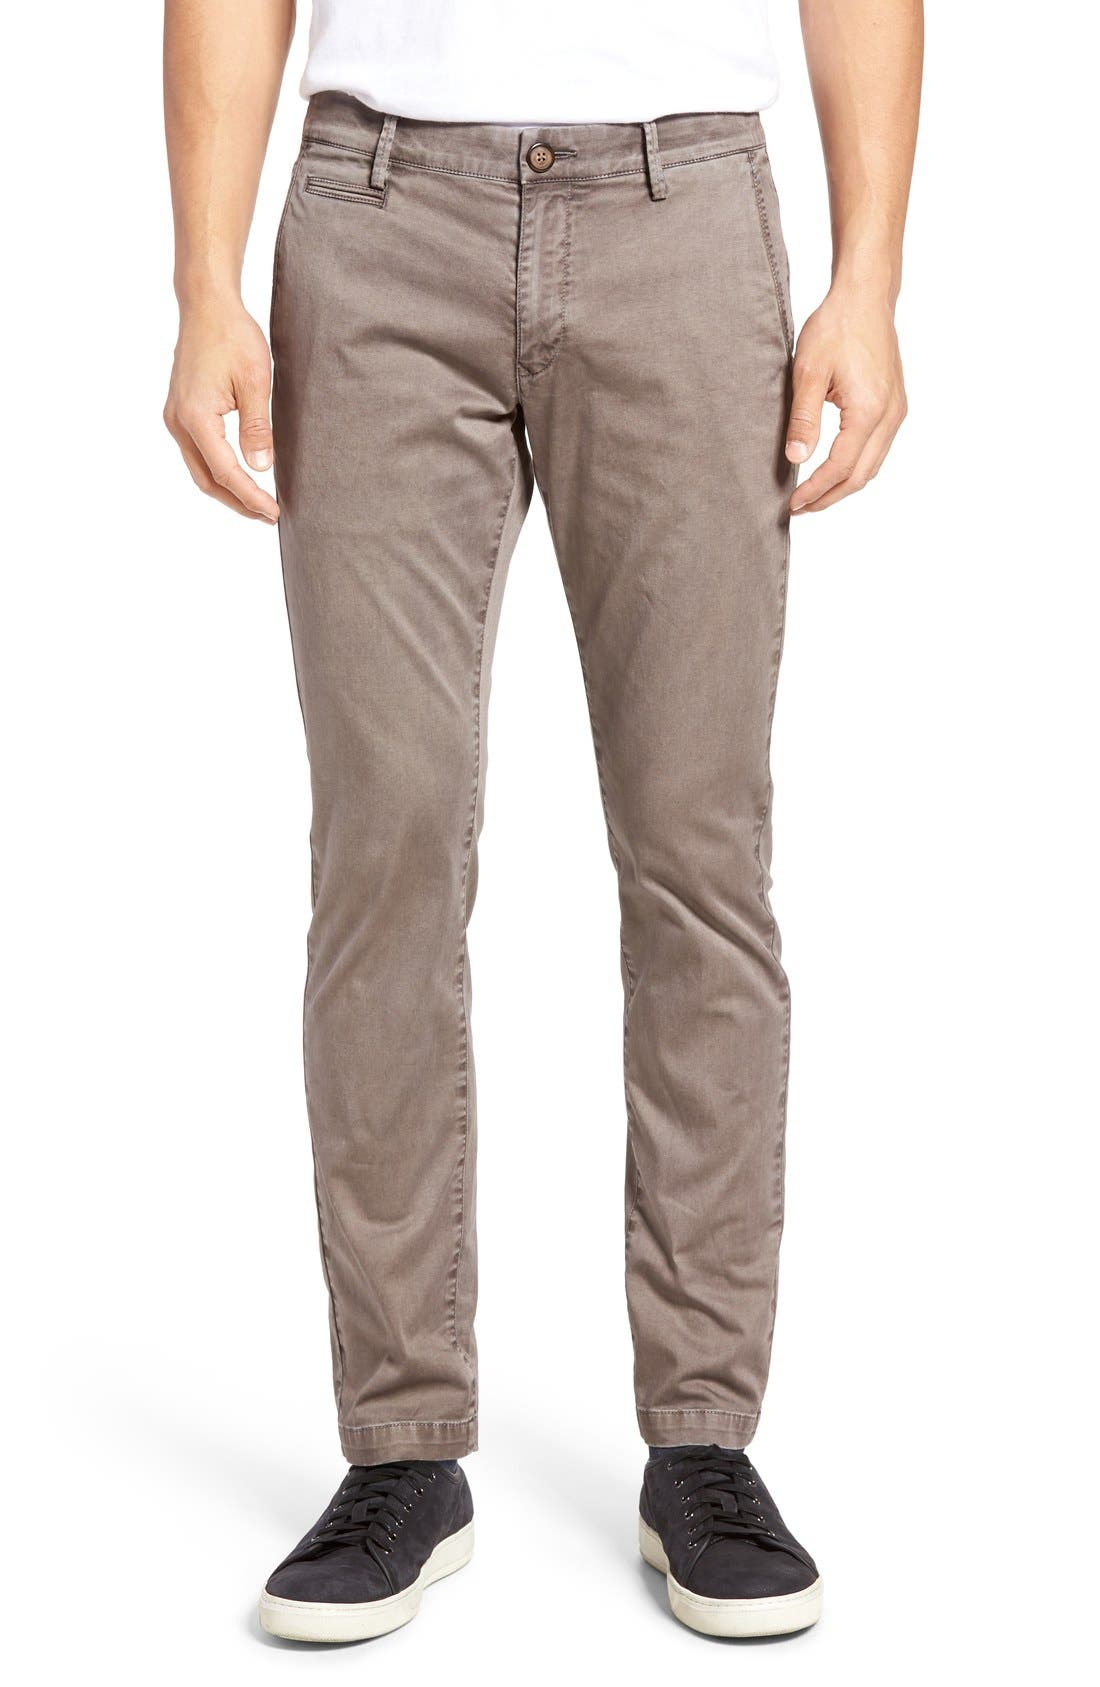 Enzyme Washed Chinos,                         Main,                         color, Grey